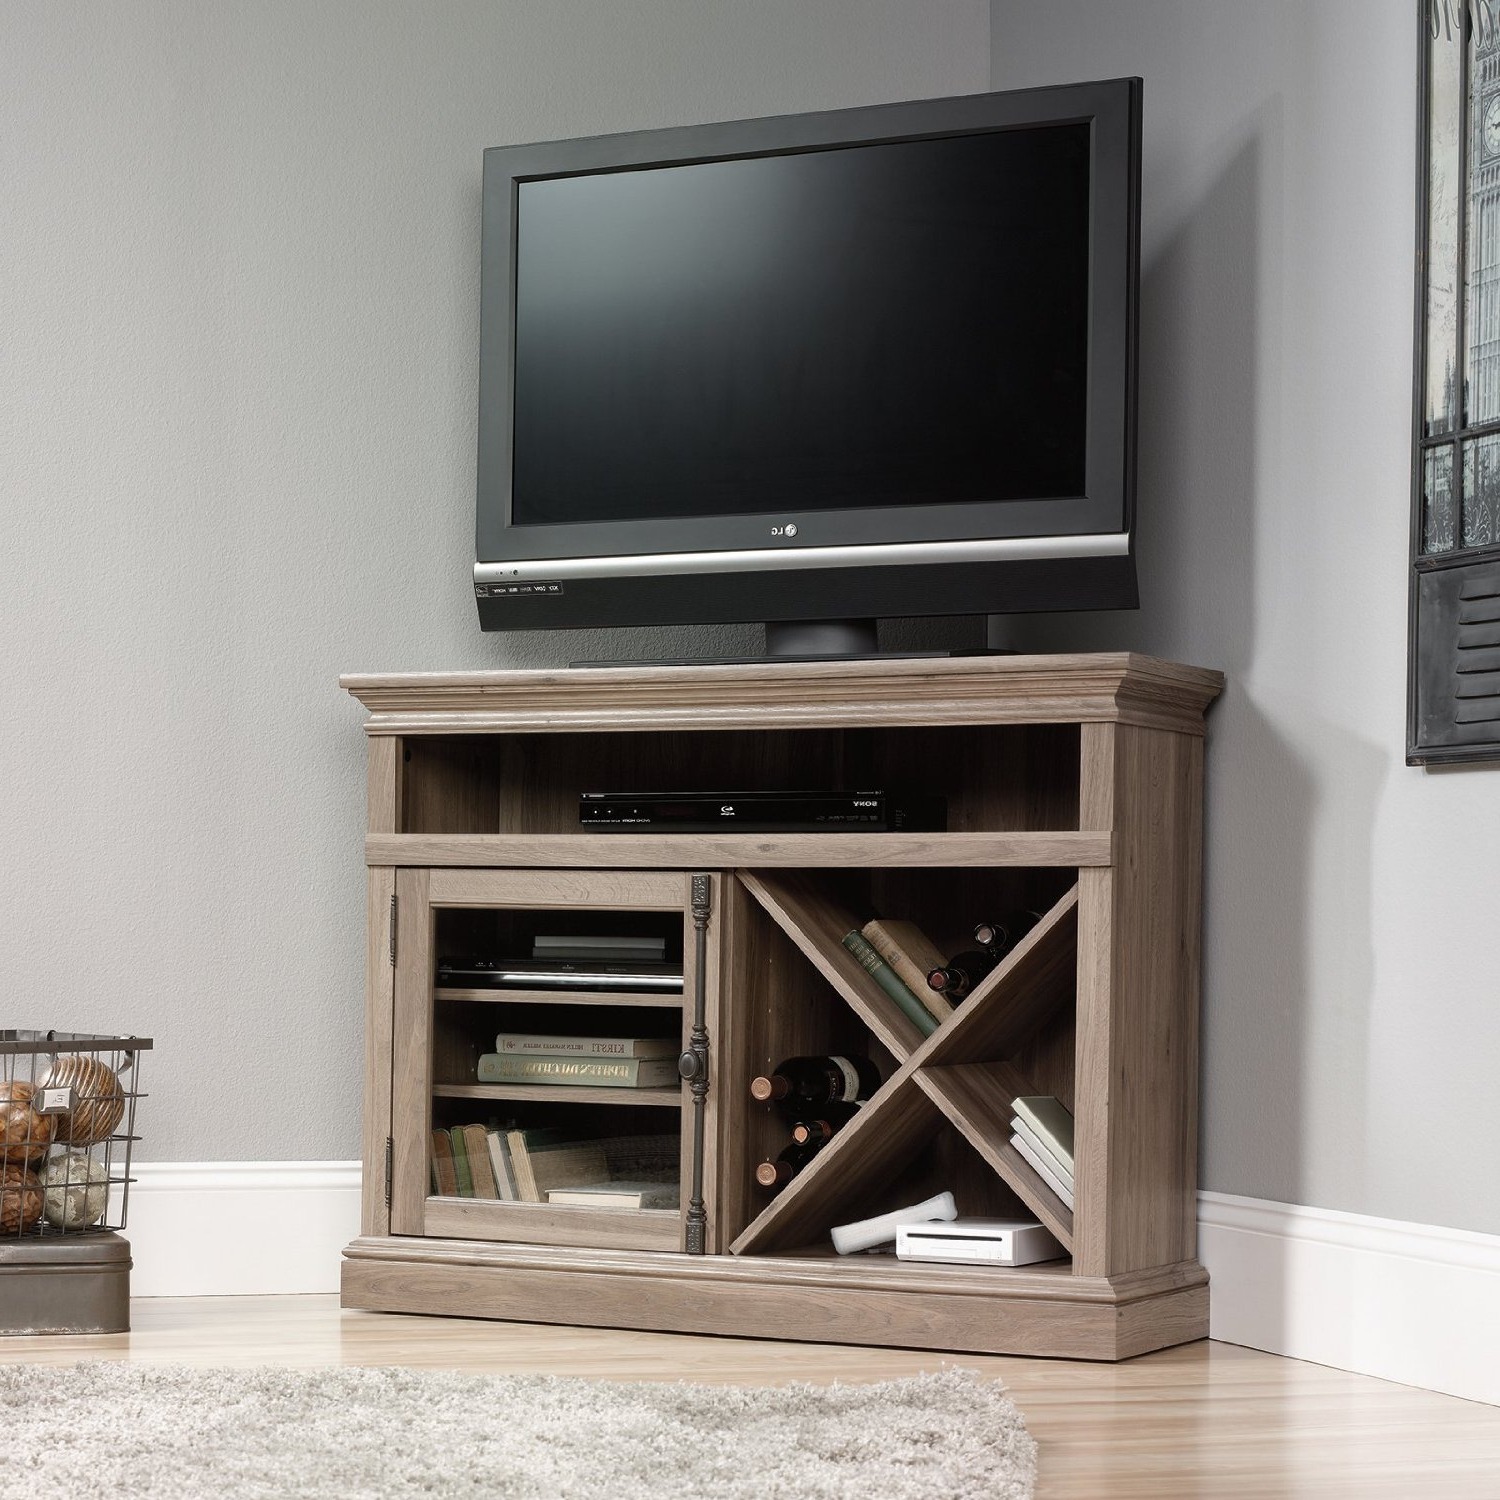 Unique Tv Stands For Flat Screens With Regard To Favorite Tv Stands. Modern Glass Corner Tv Stands For Flat Screen Tvs Ideas (Gallery 18 of 20)